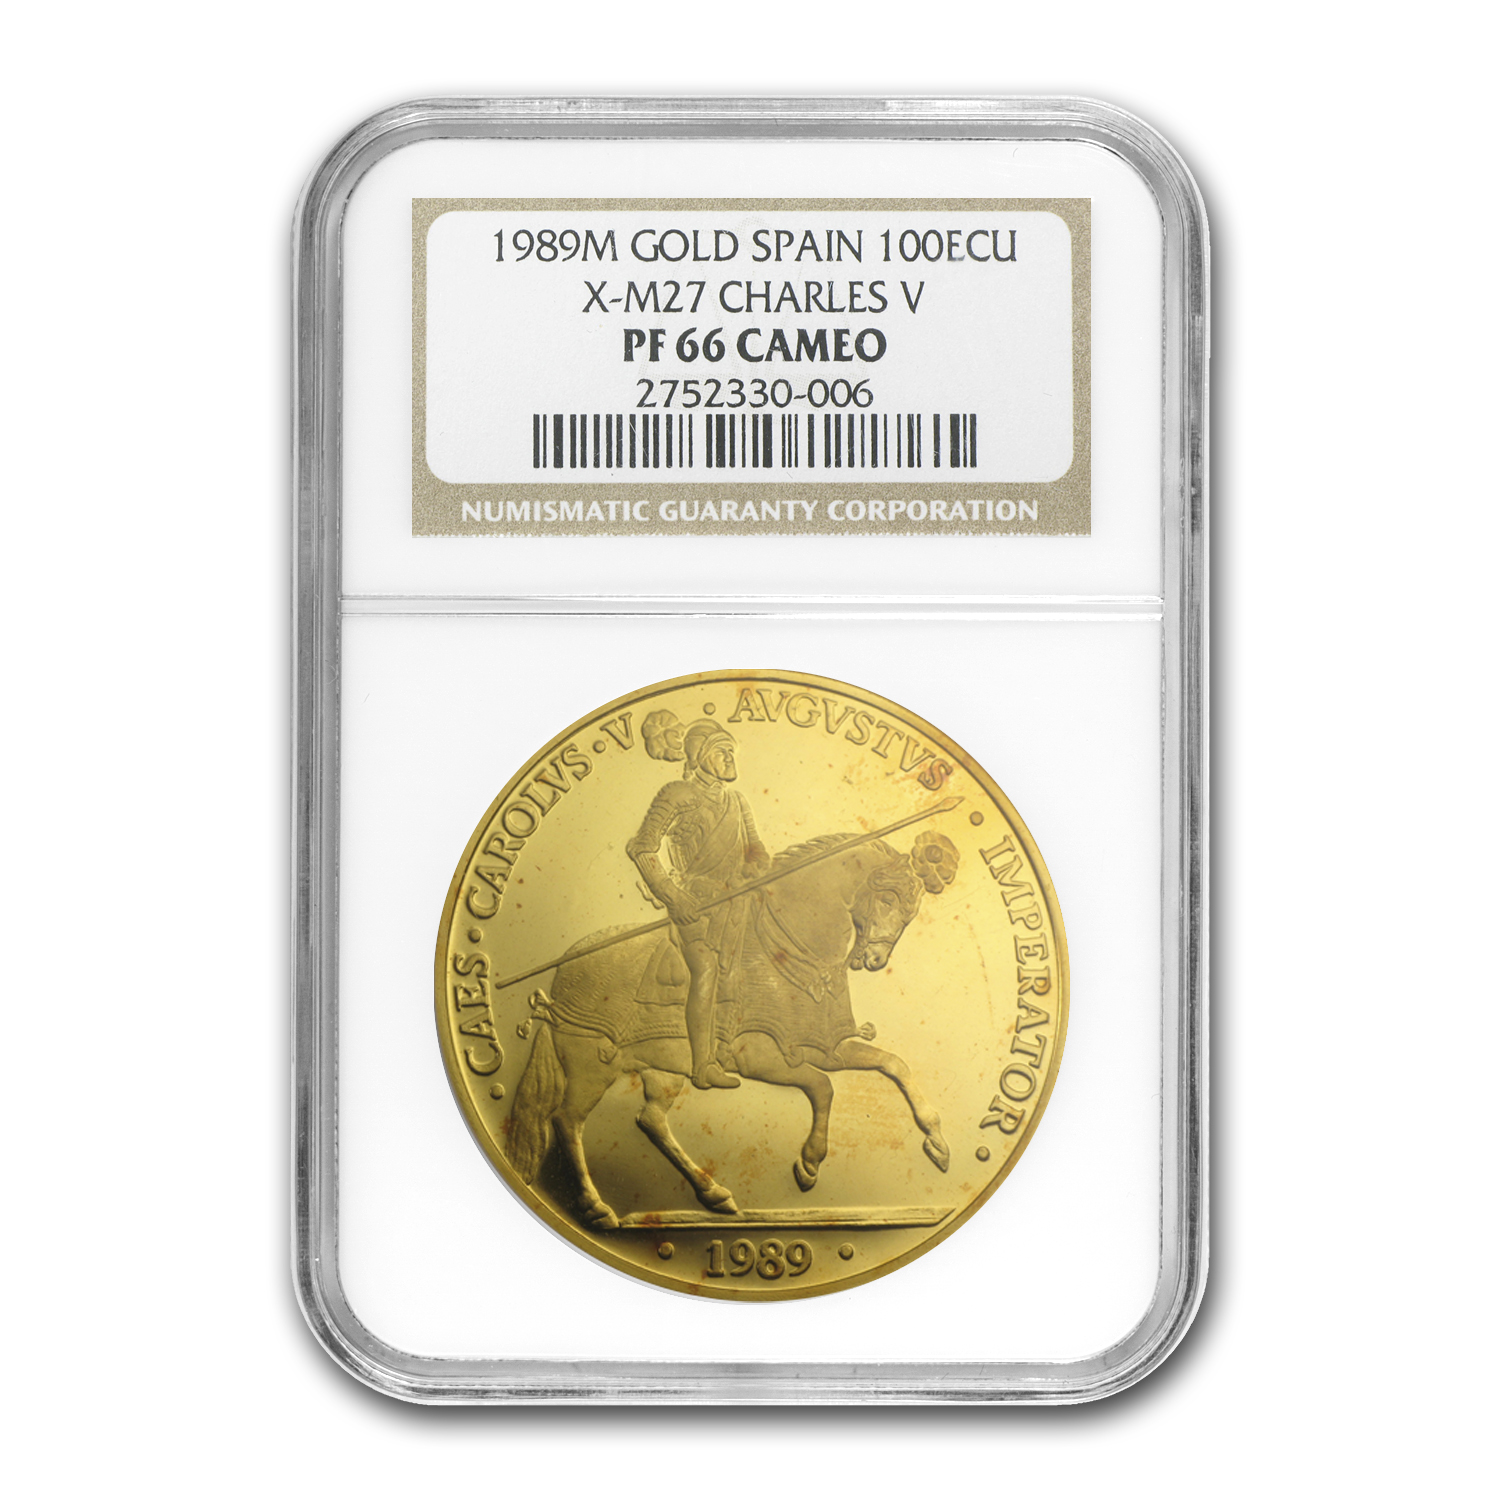 1989 Spain Proof Gold 100 EcuCharles V PF-66 NGC